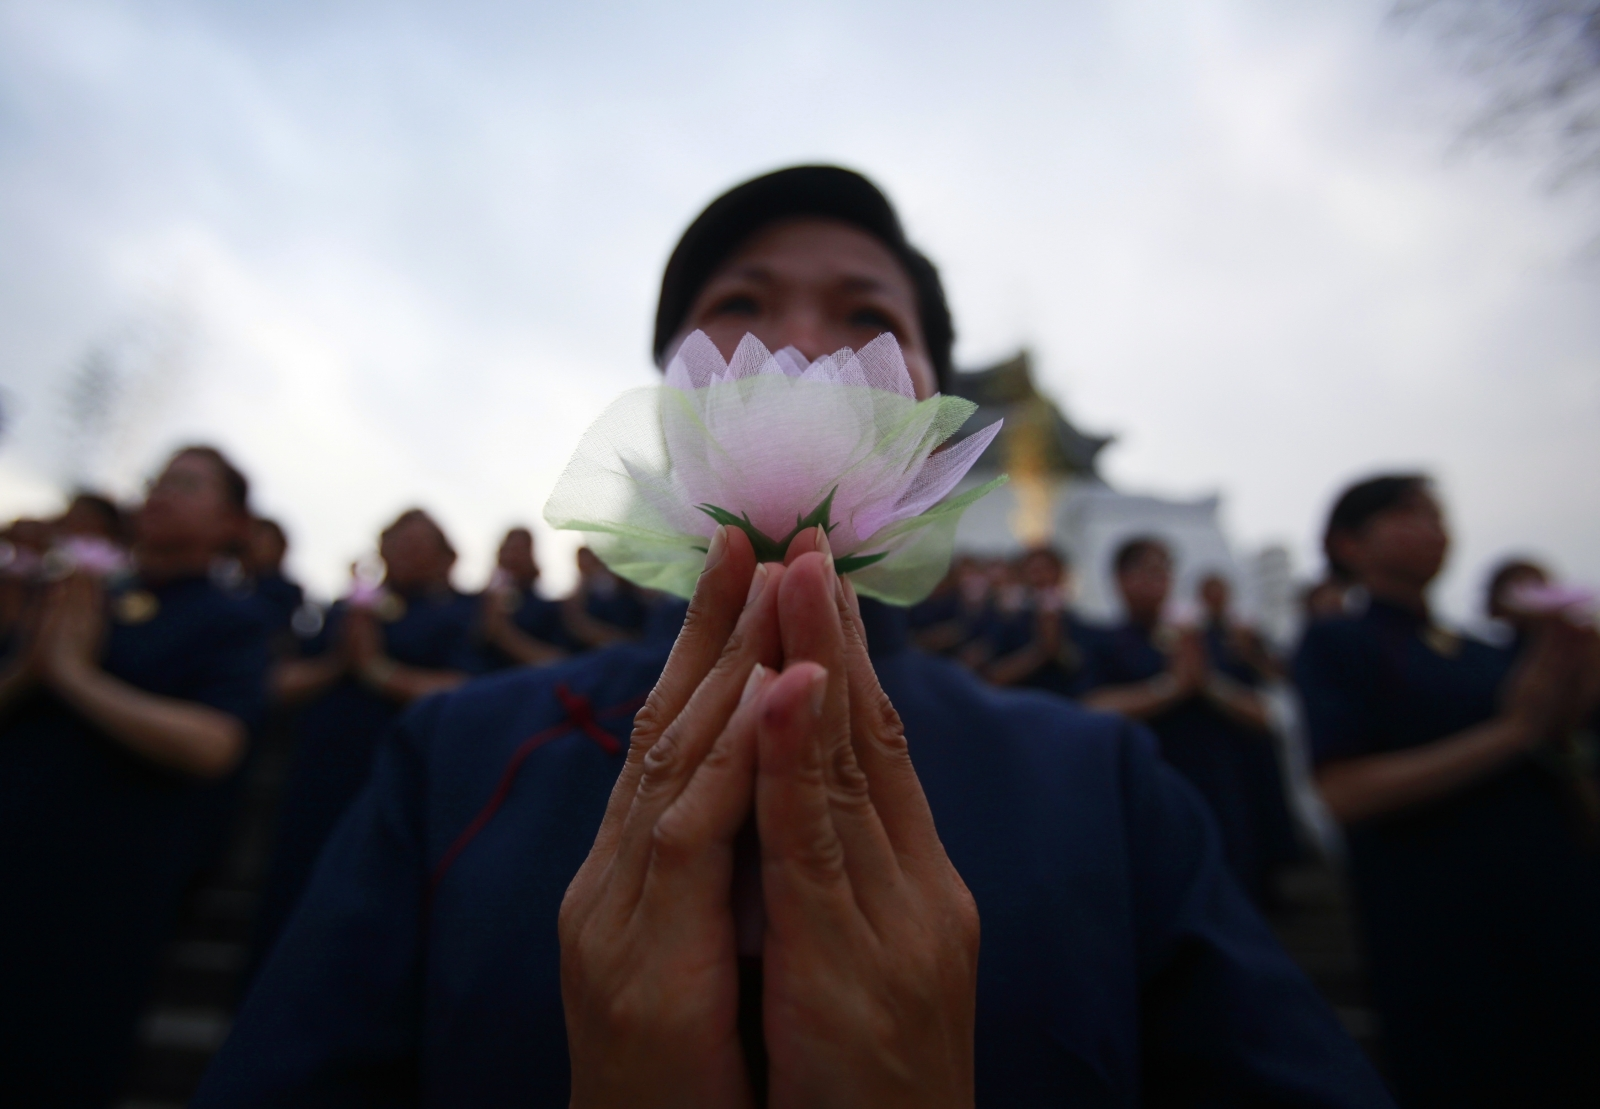 Buddhists pray during a ceremony to commemorate the birth of Buddha, at the Chiang Kai-shek Memorial Hall in Taipei May 8, 2011.